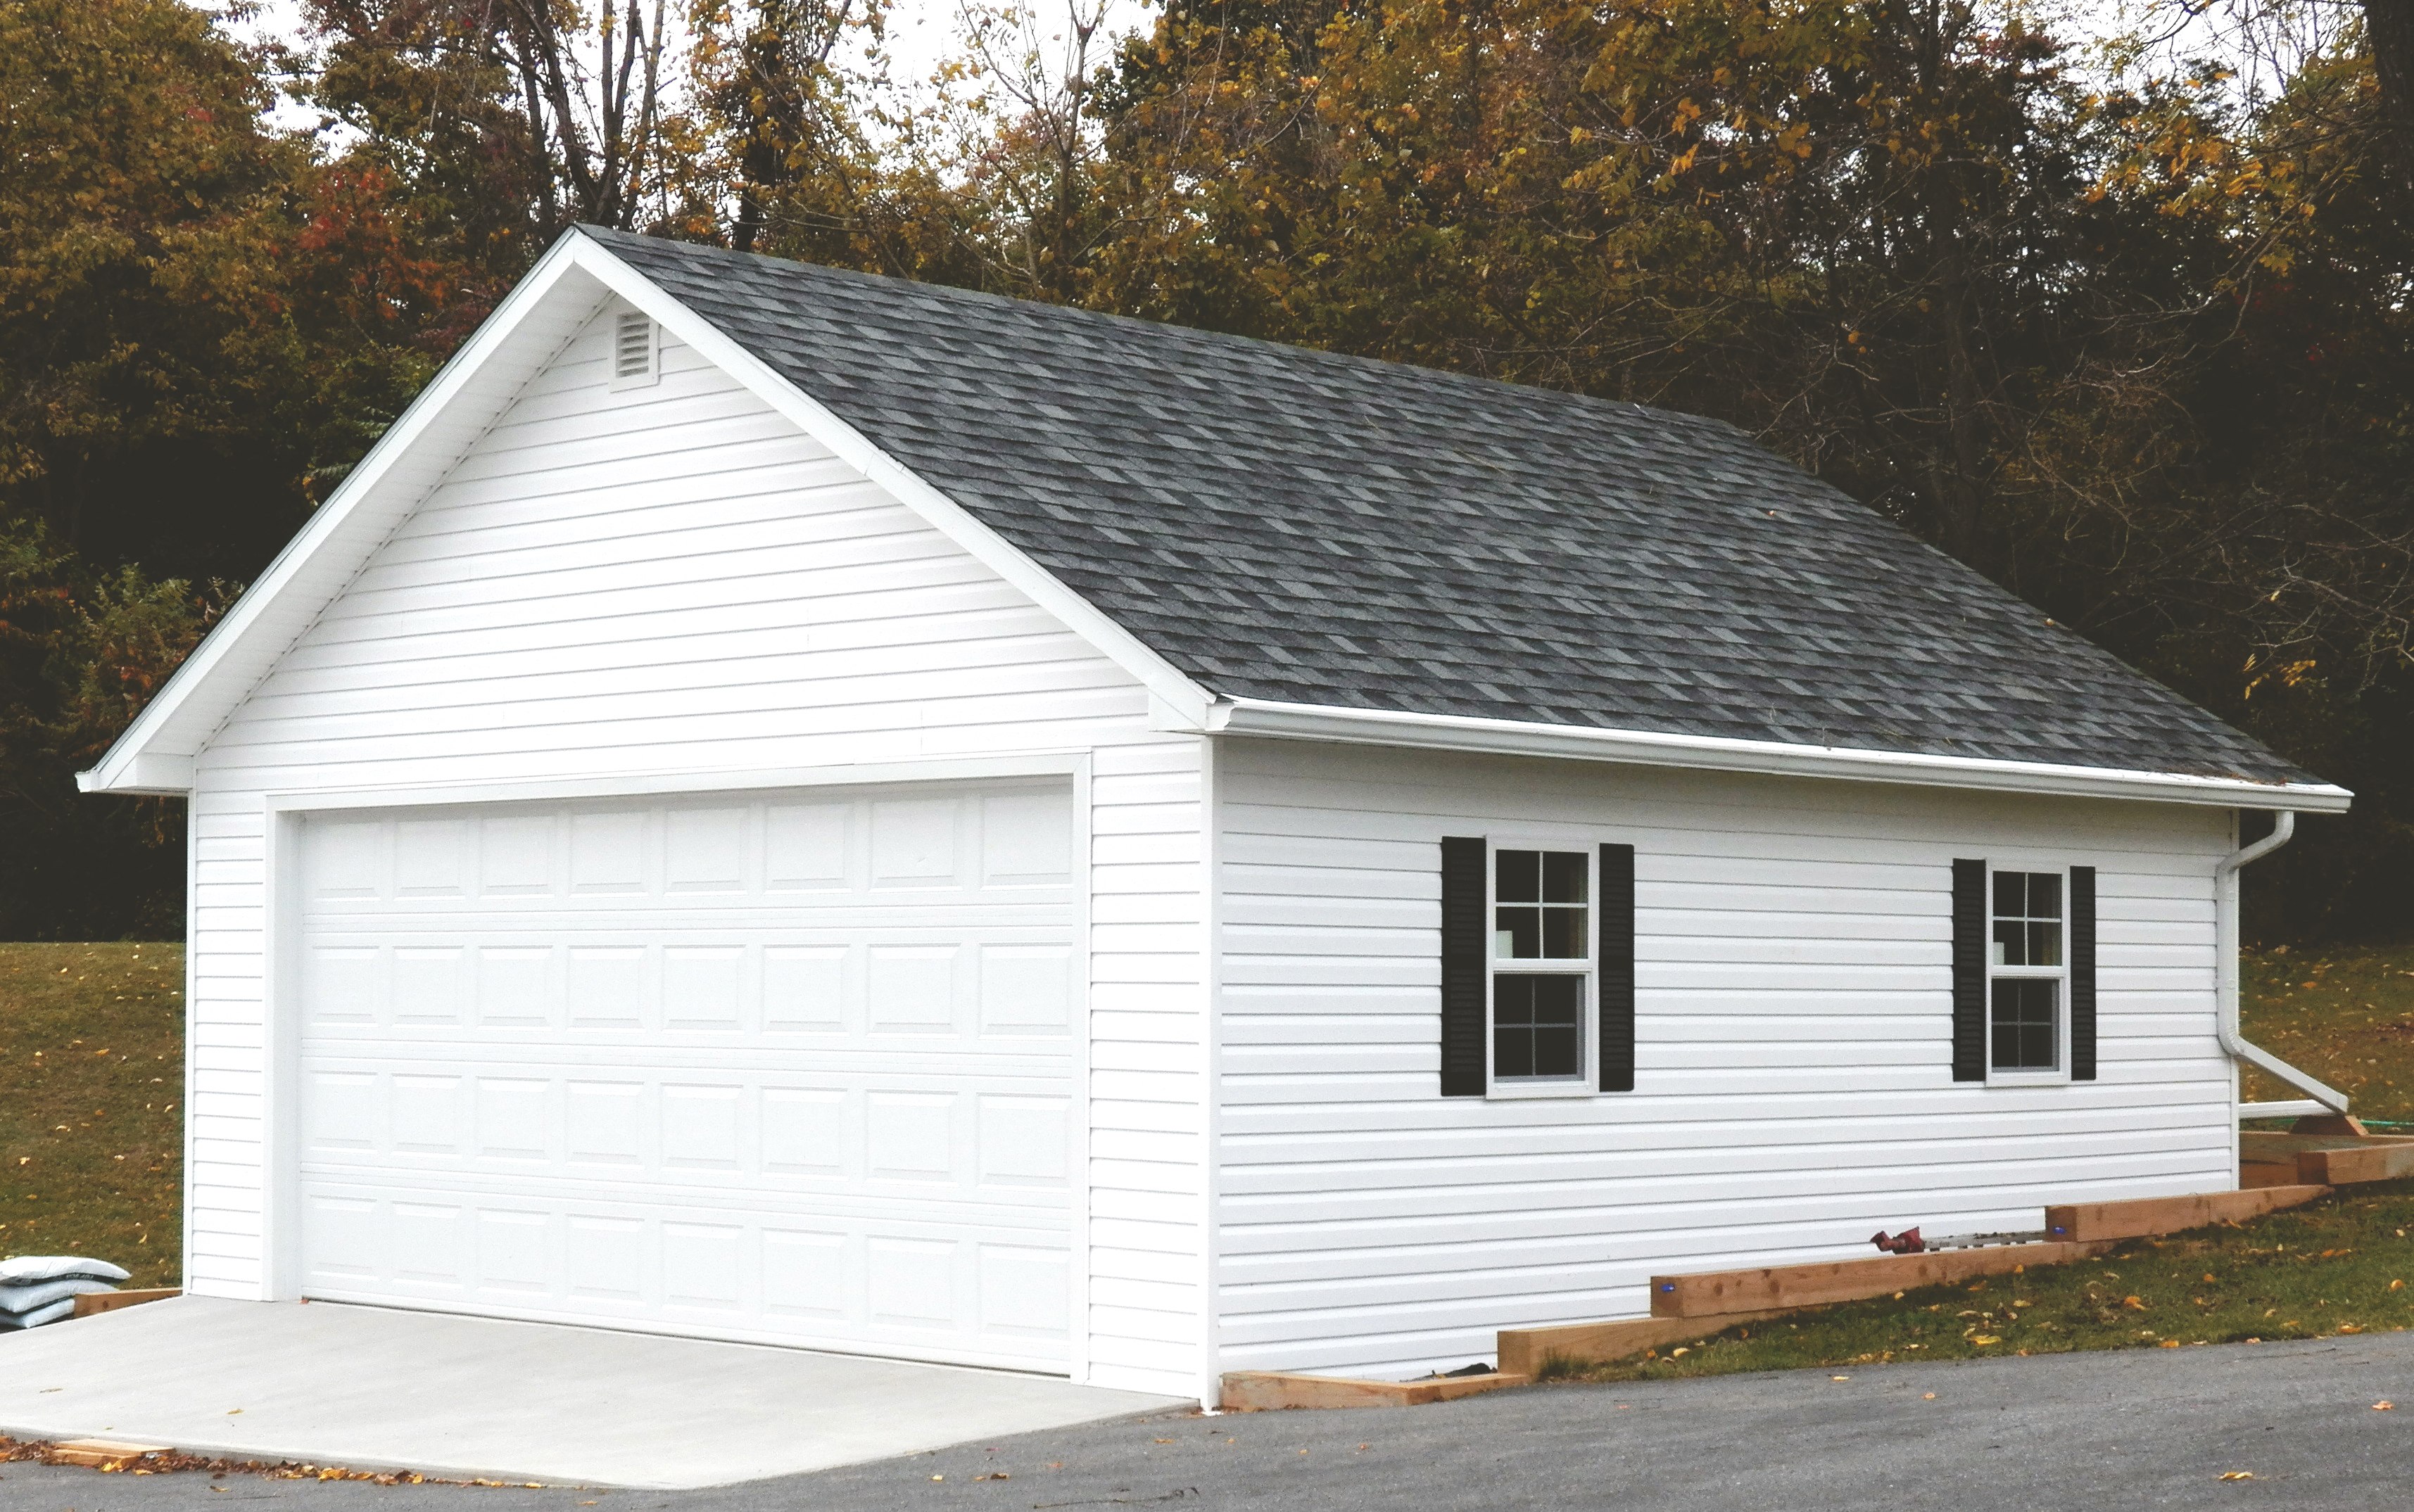 Siding, Shingles & Trim